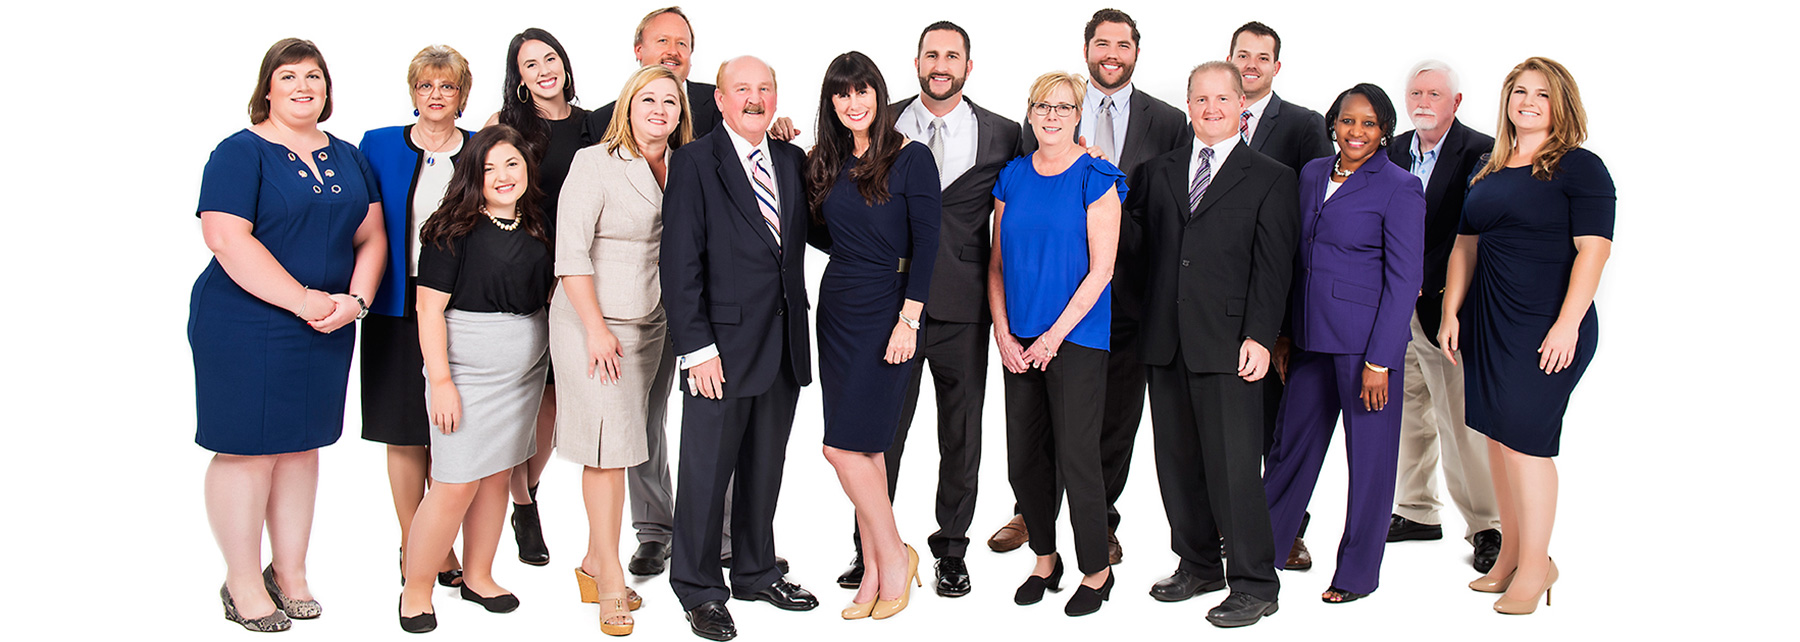 SC Insurance Brokers Team | Greenville, SC